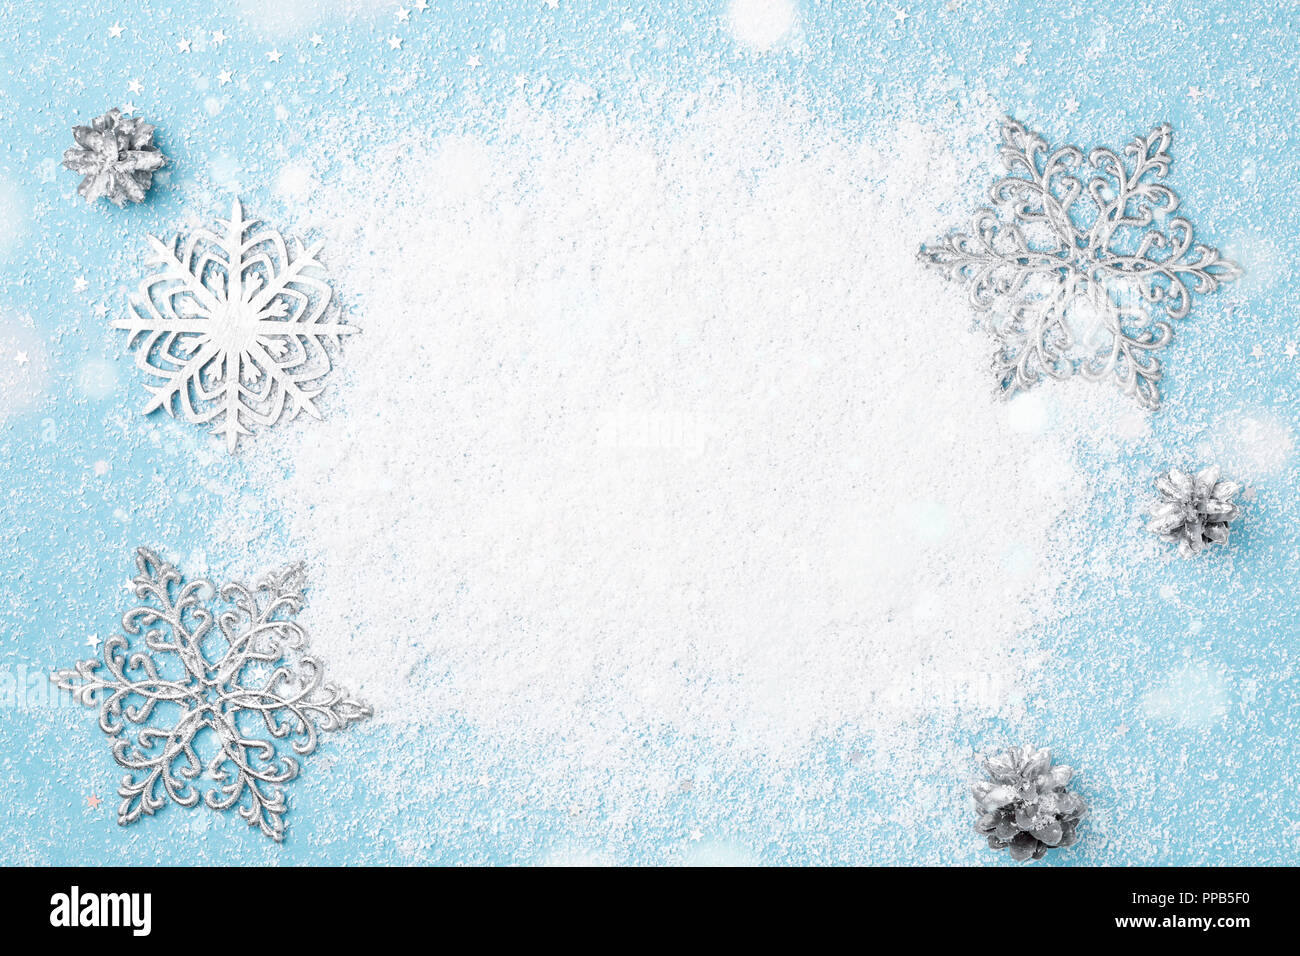 Light blue Christmas frame of snow and silver snowflakes. Winter ...